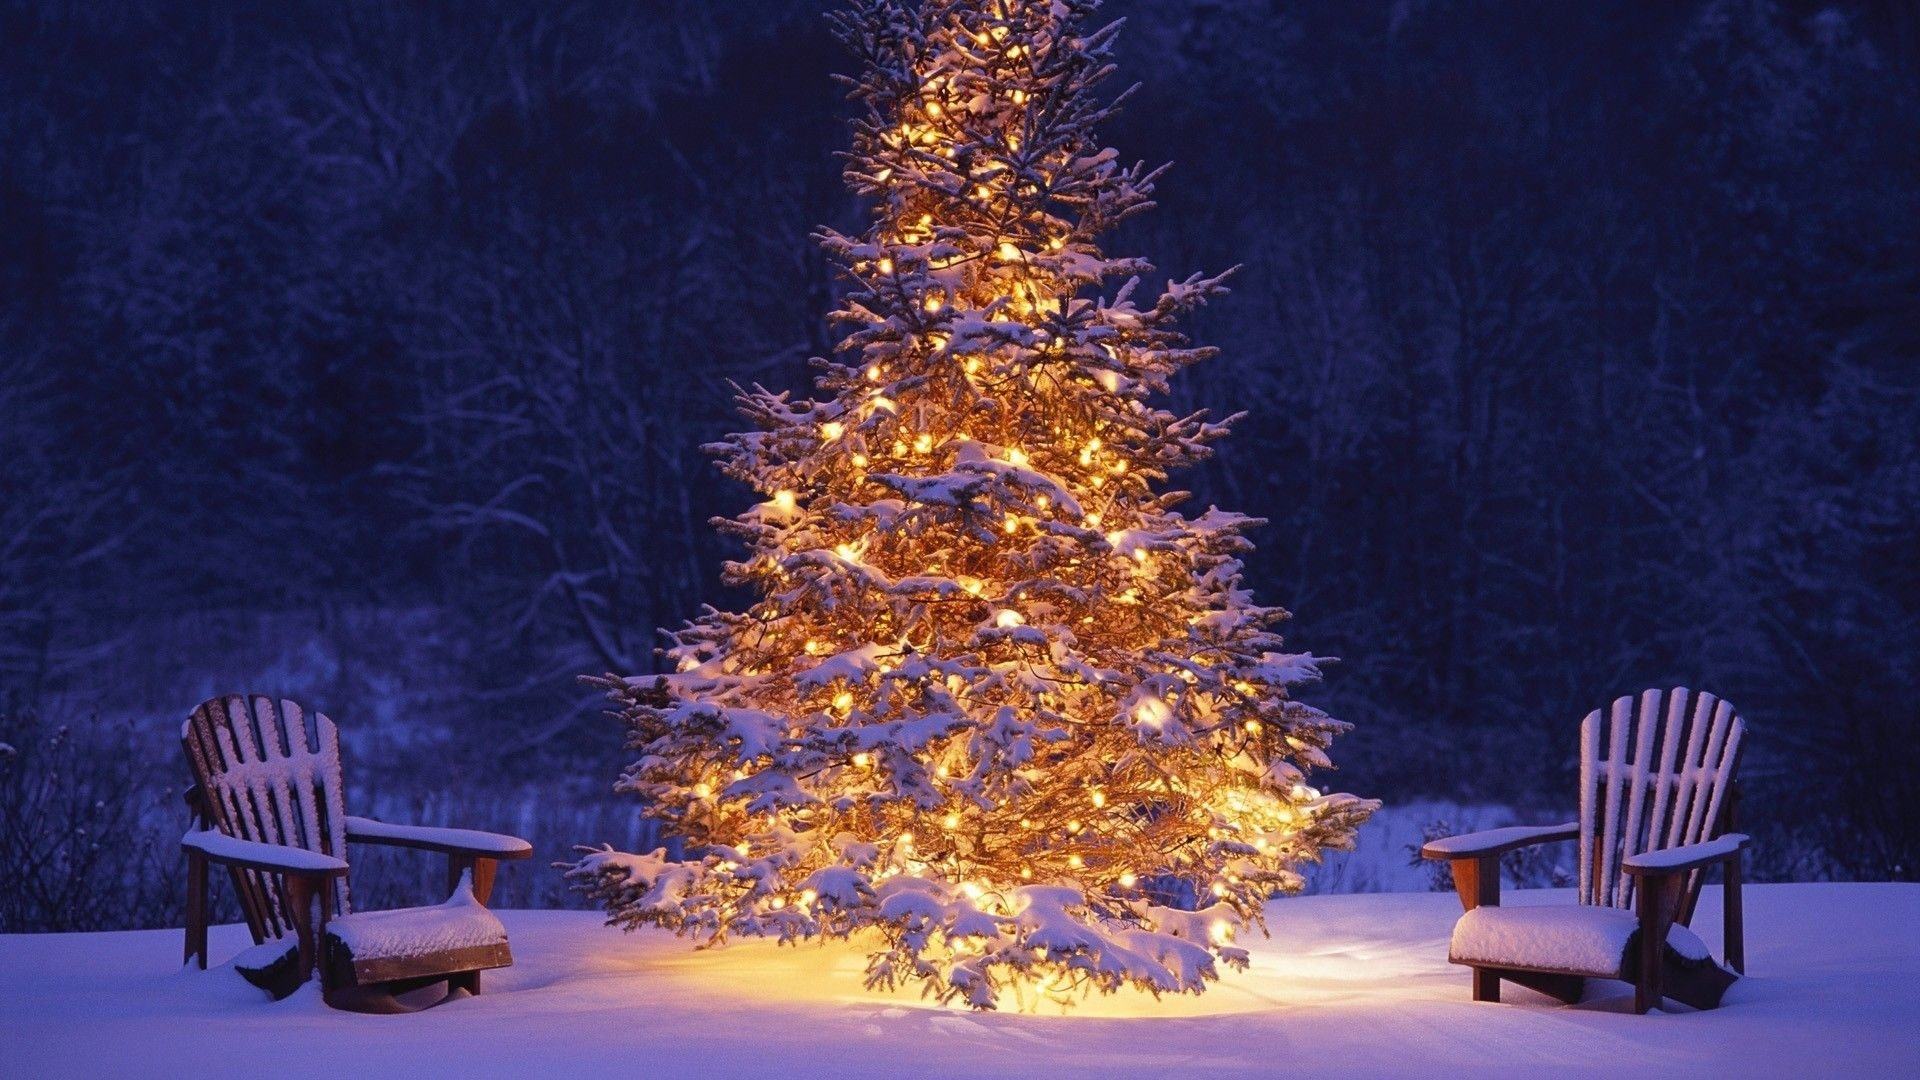 christmas computer wallpaper ·① download free amazing hd